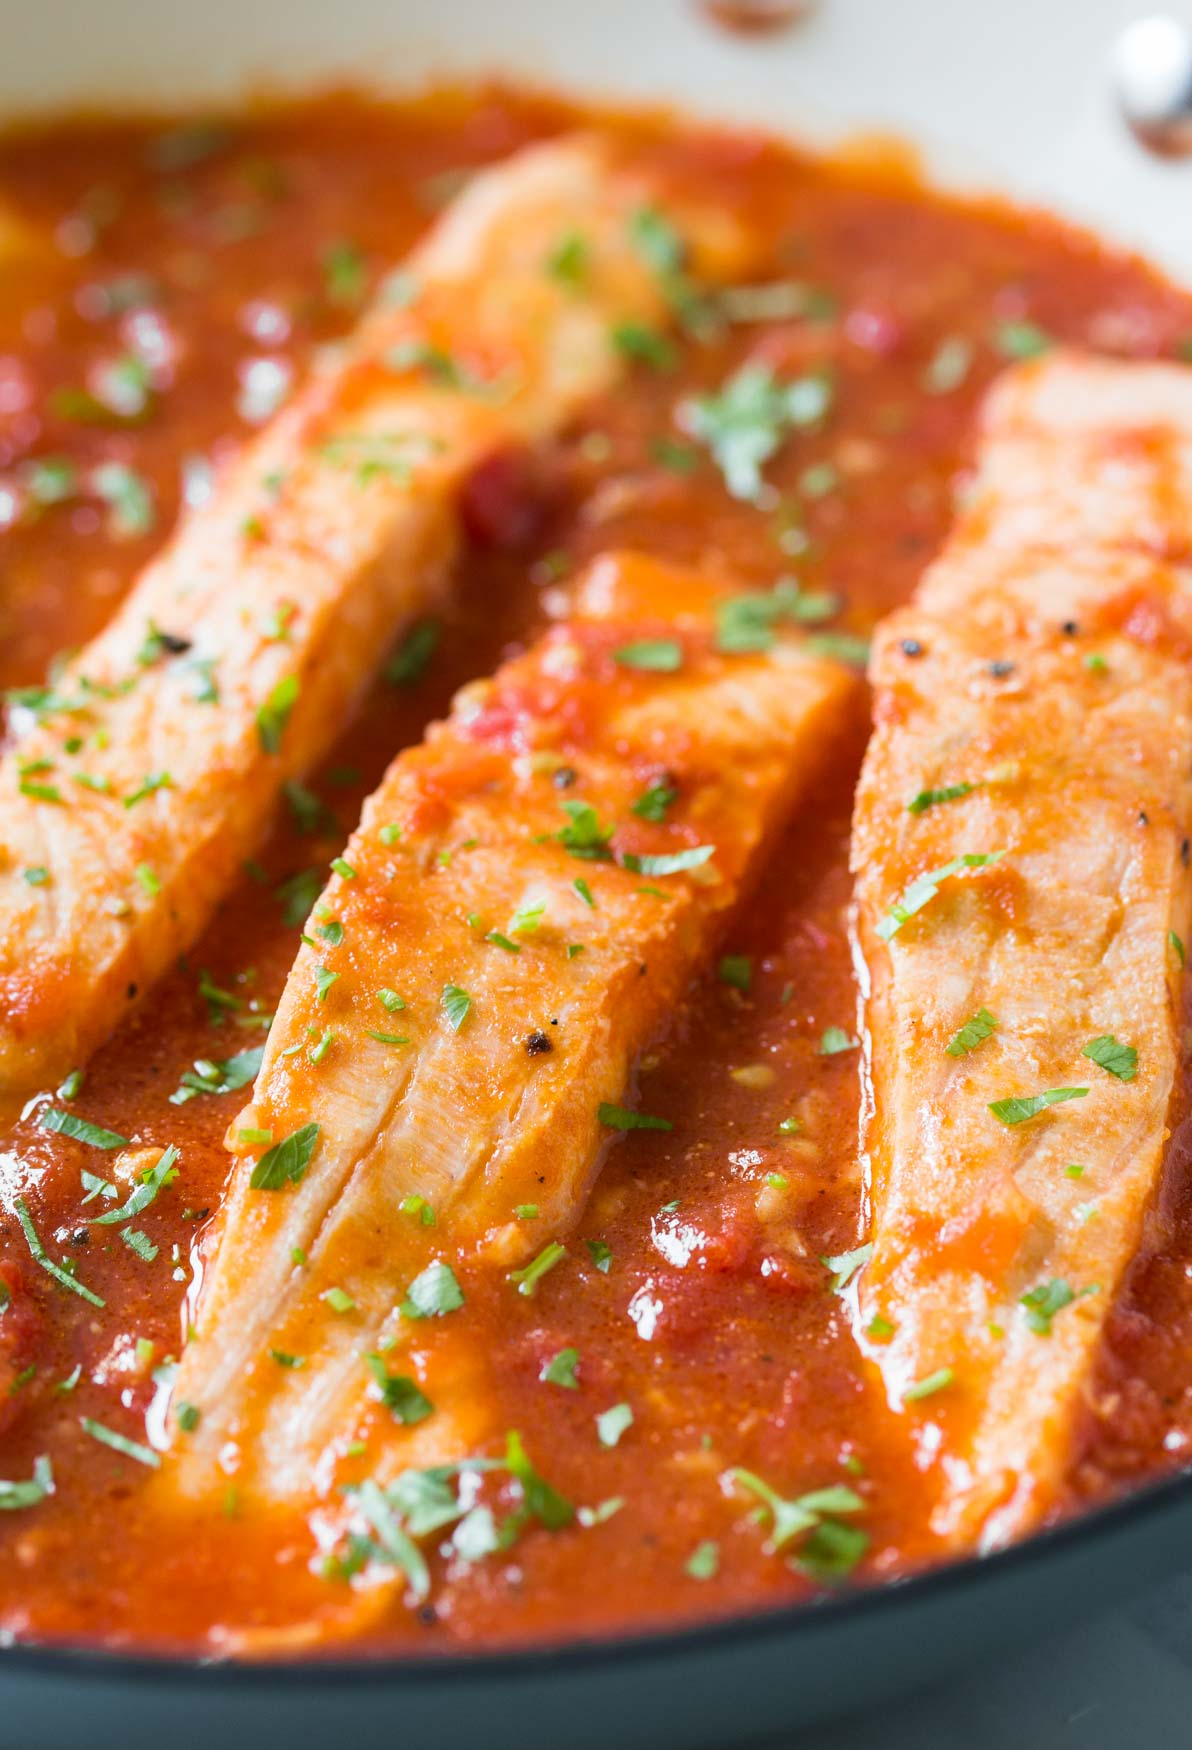 Salmon in Tomato Sauce - Under 30 min quick and easy weeknight meal. Serve with pasta, grits or plain rice.